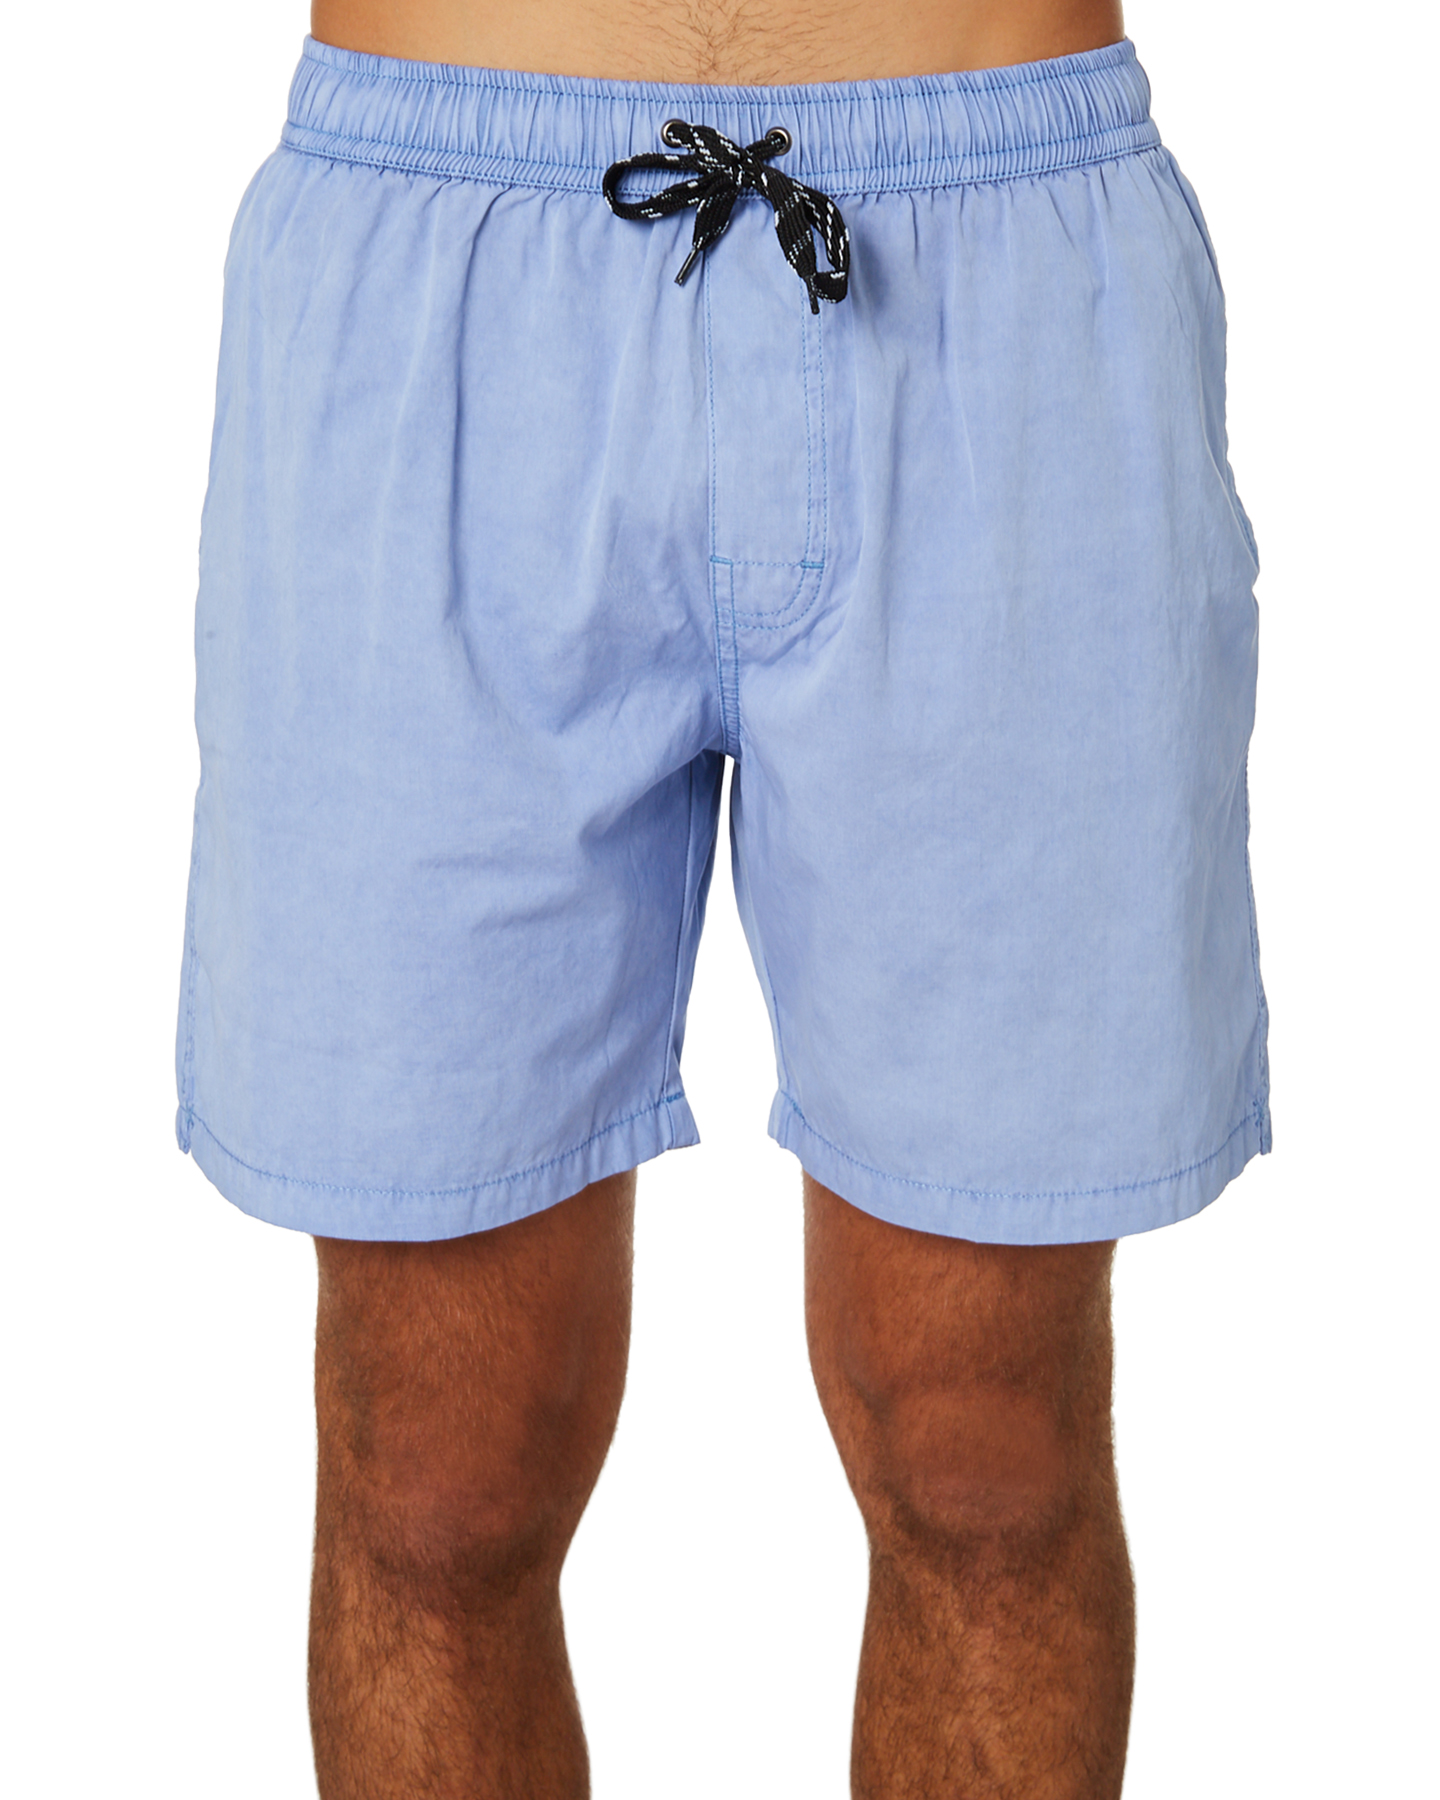 Swell Malibu Mens Beach Short Blue